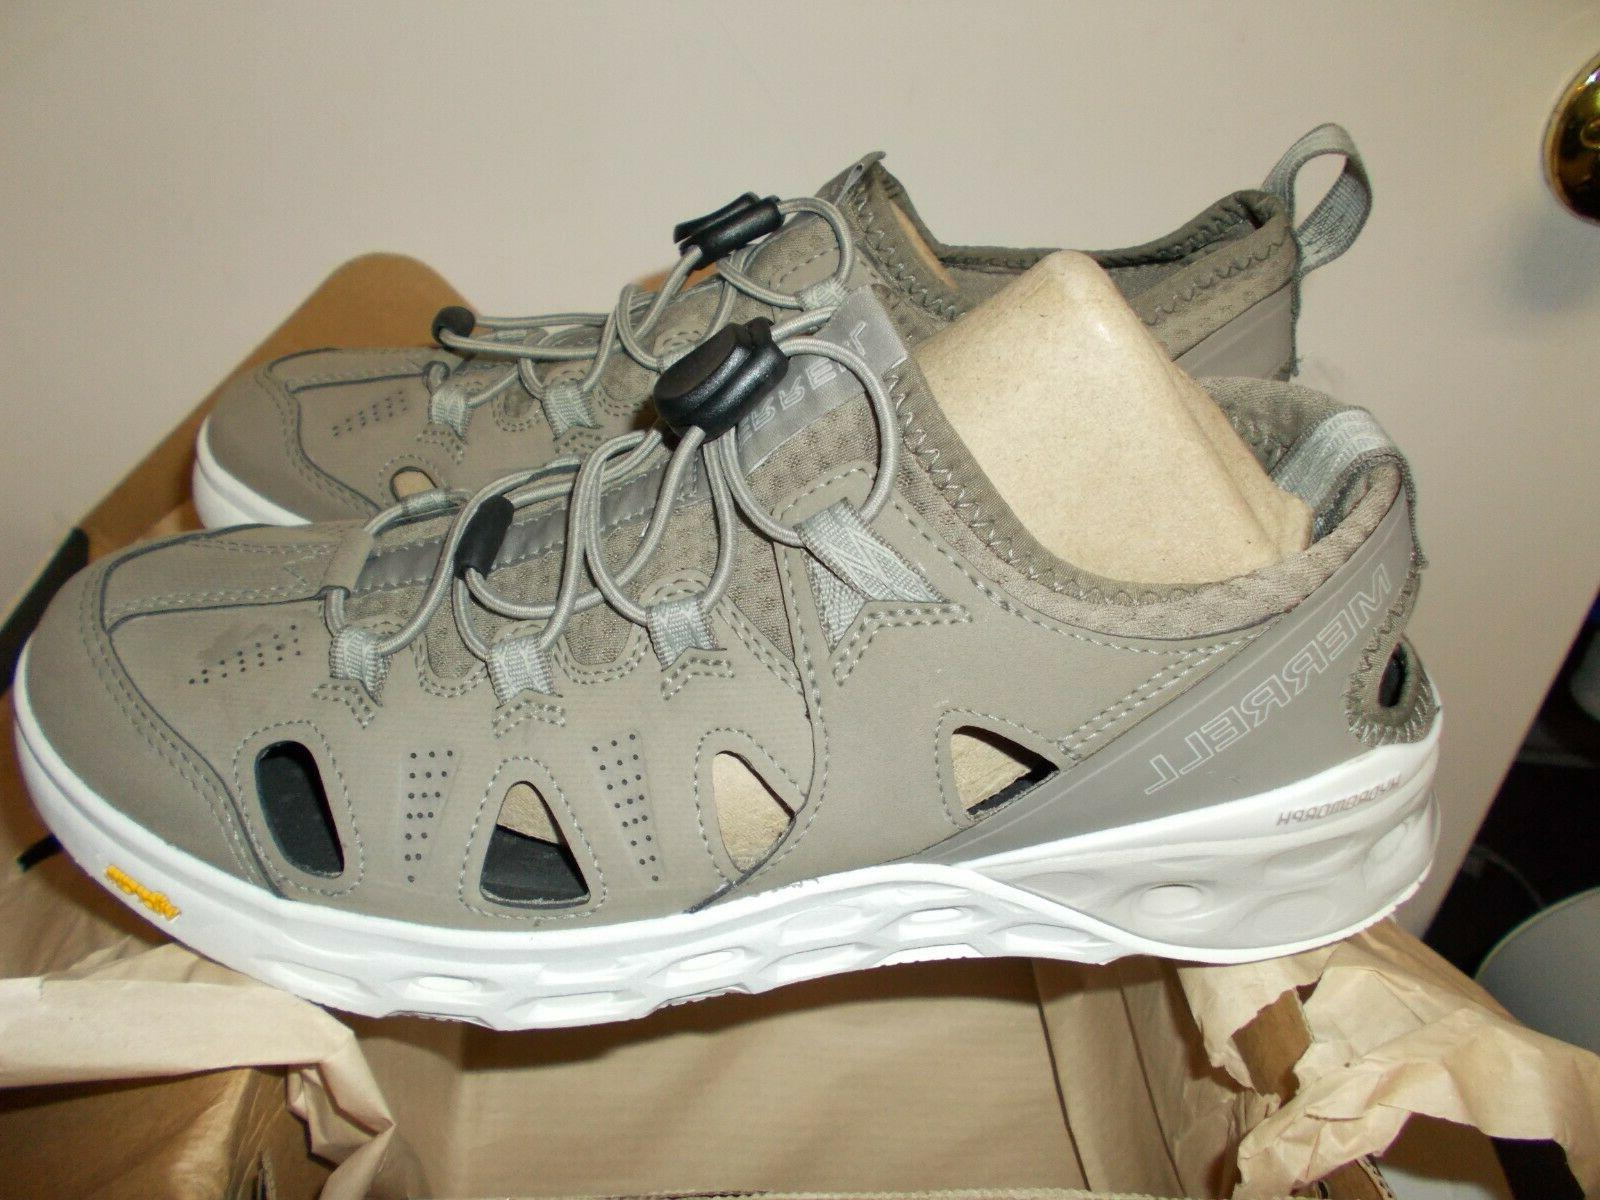 NIB Merrell Water Brindle